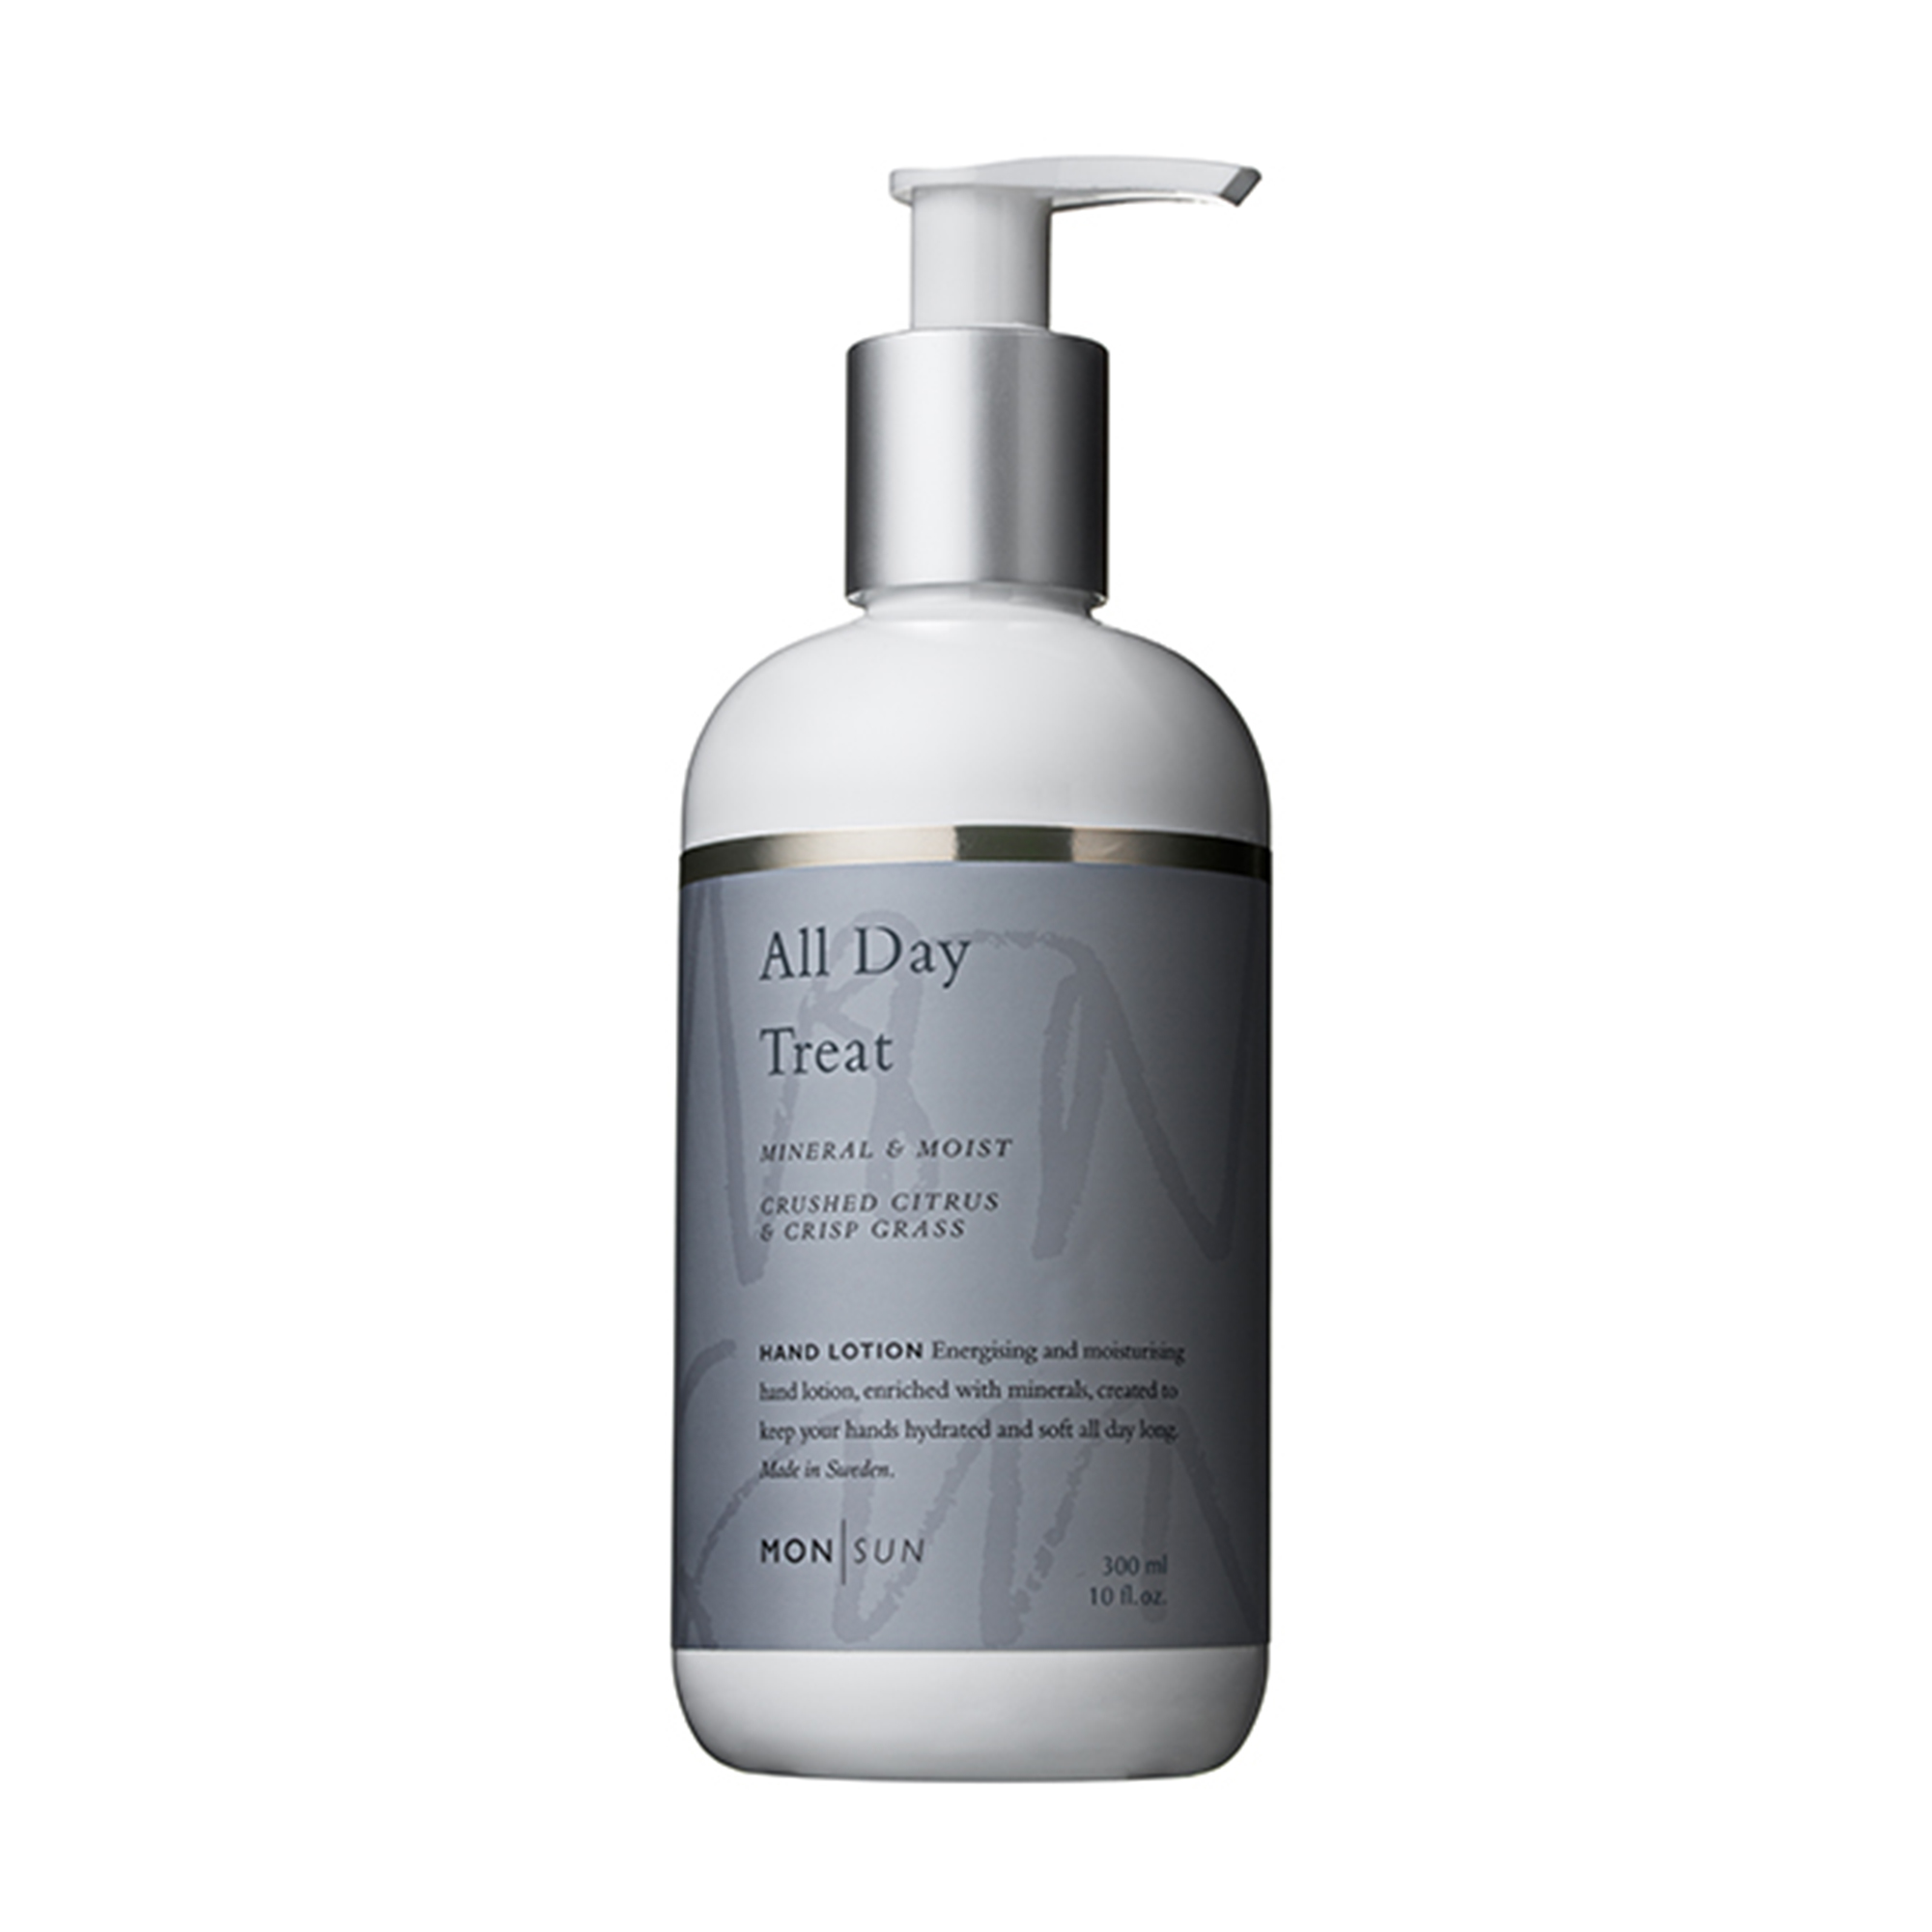 All Day Treat Mineral & Moist Hand Lotion